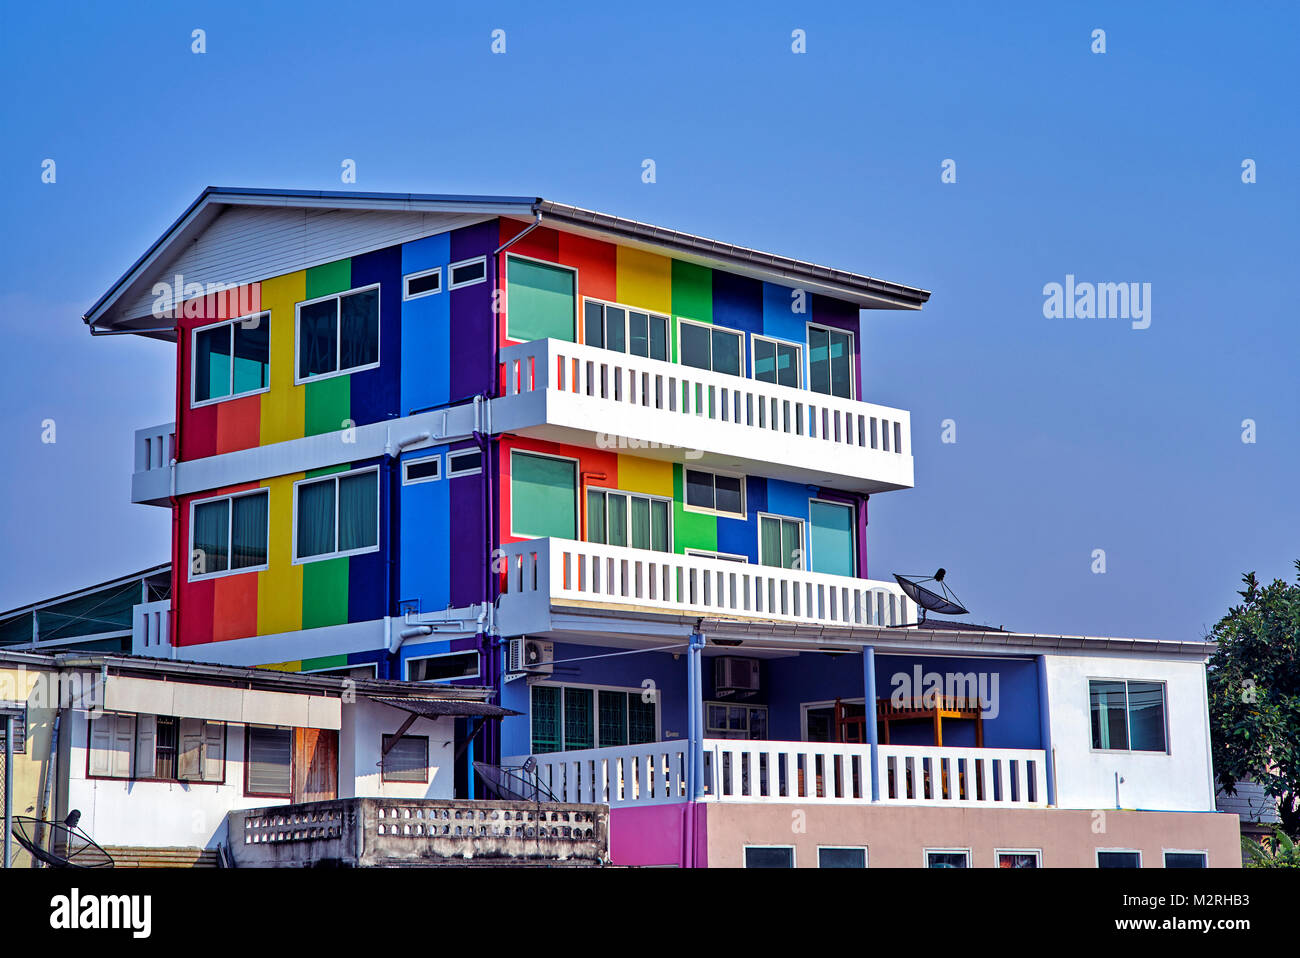 multi-coloured building. Colourful building. Thailand Southeast Asia - Stock Image